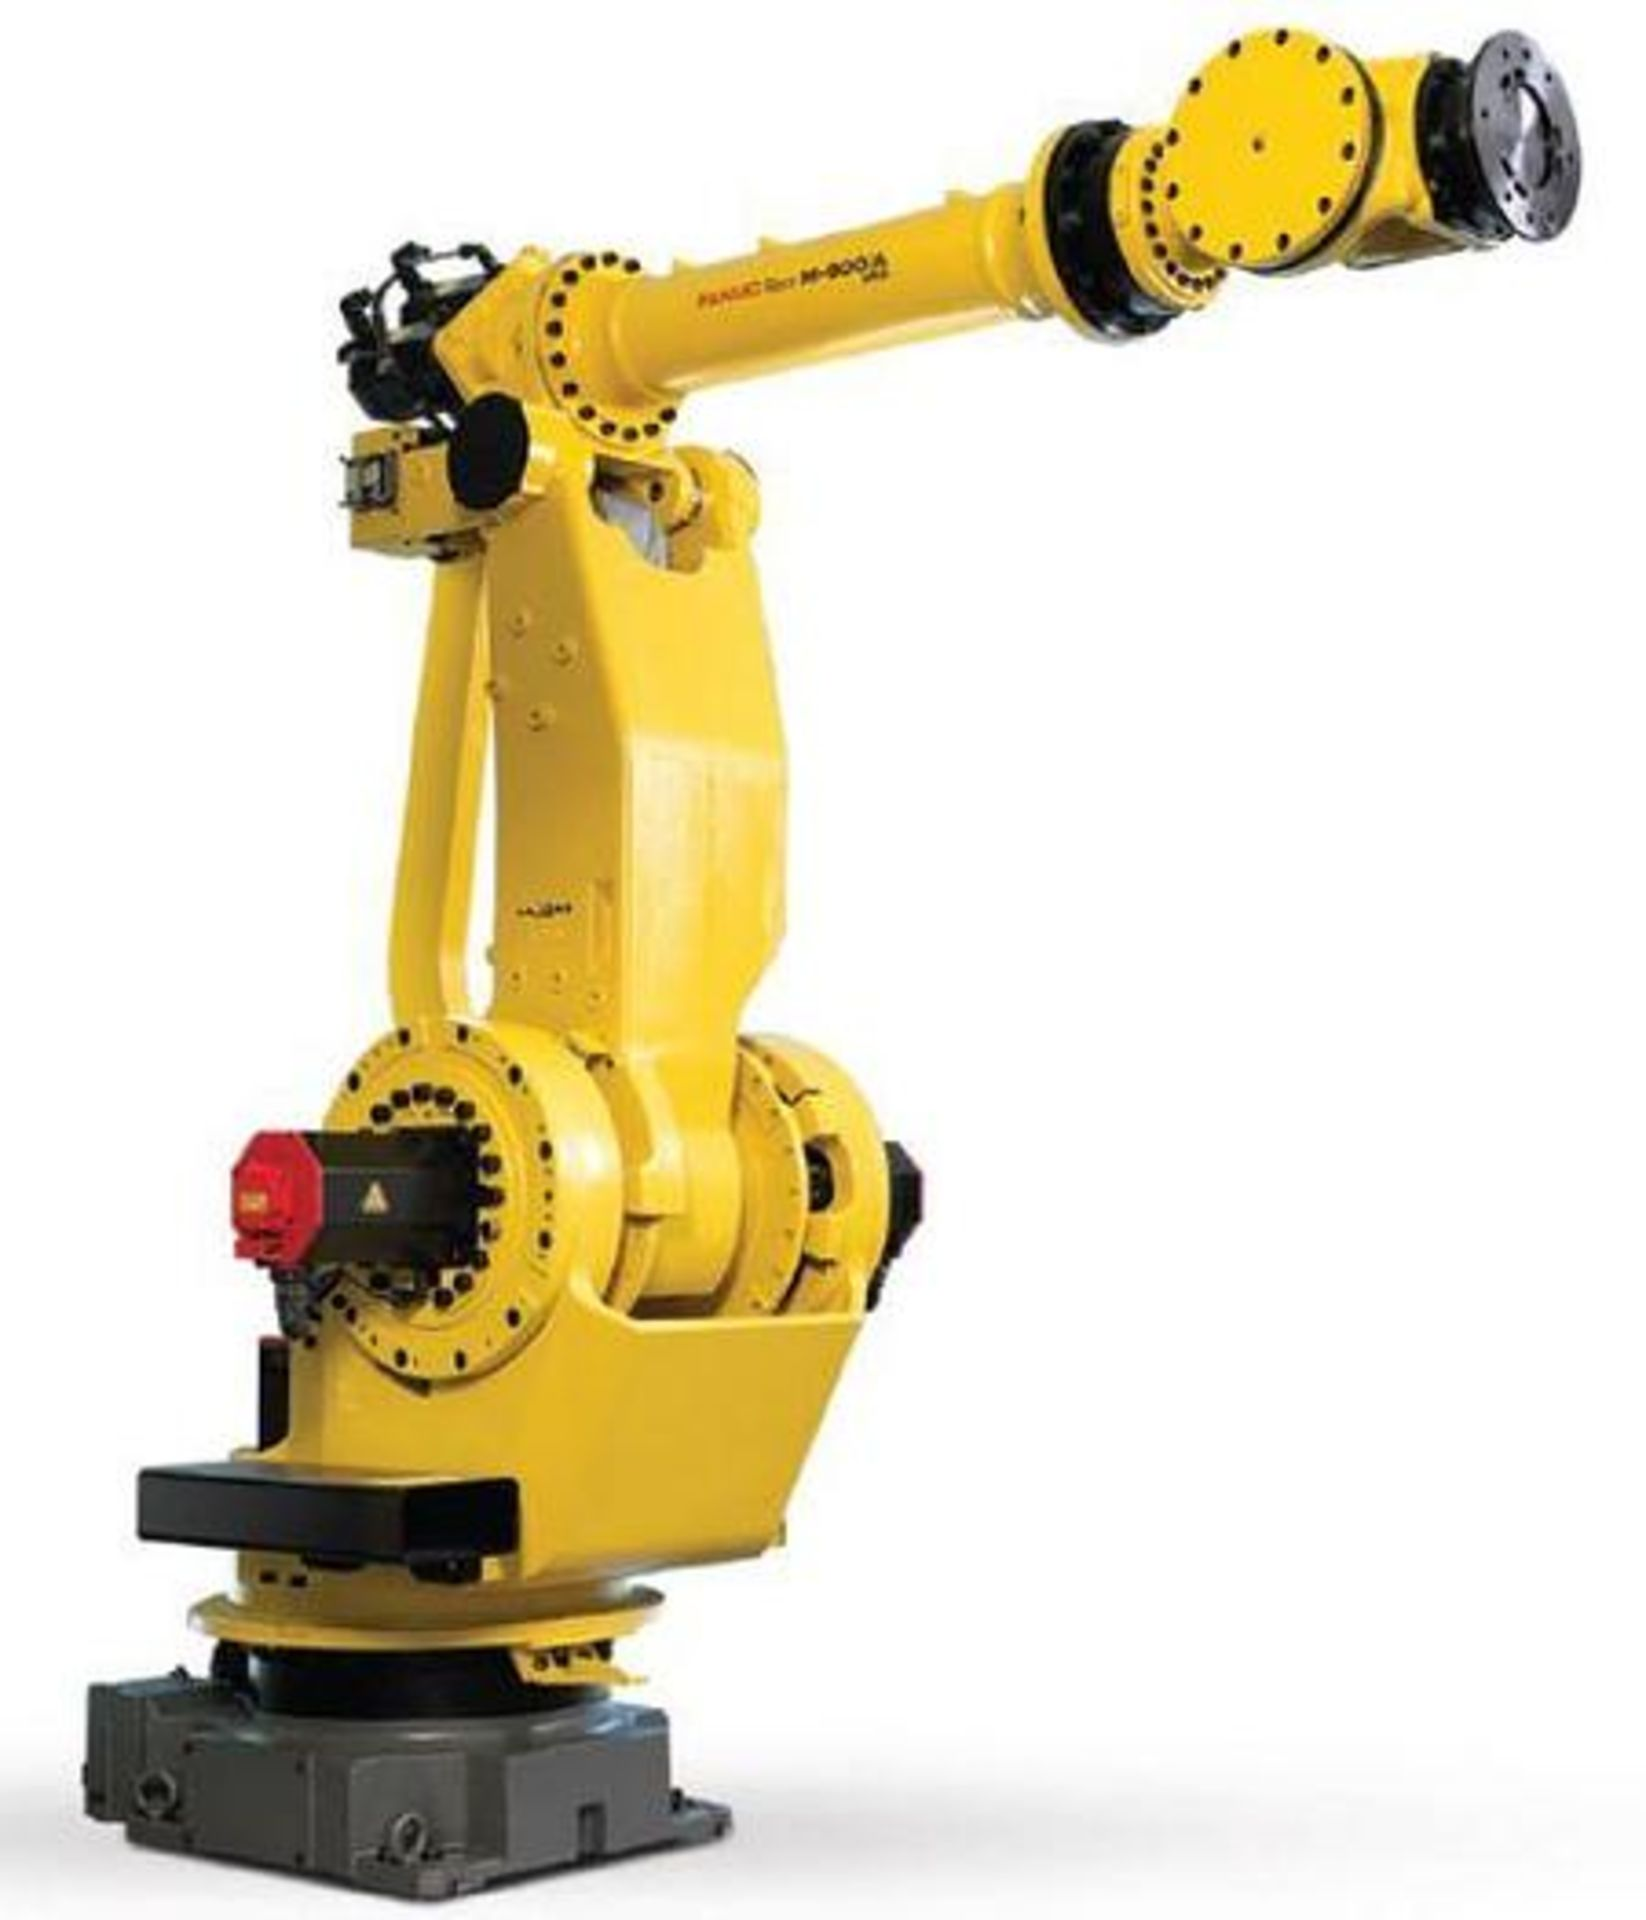 FANUC M900iA/350 6 AXIS ROBOT WITH R30iA CONTROLLER, CABLES & TEACH, SN F111705, YEAR 2011 - Image 5 of 5